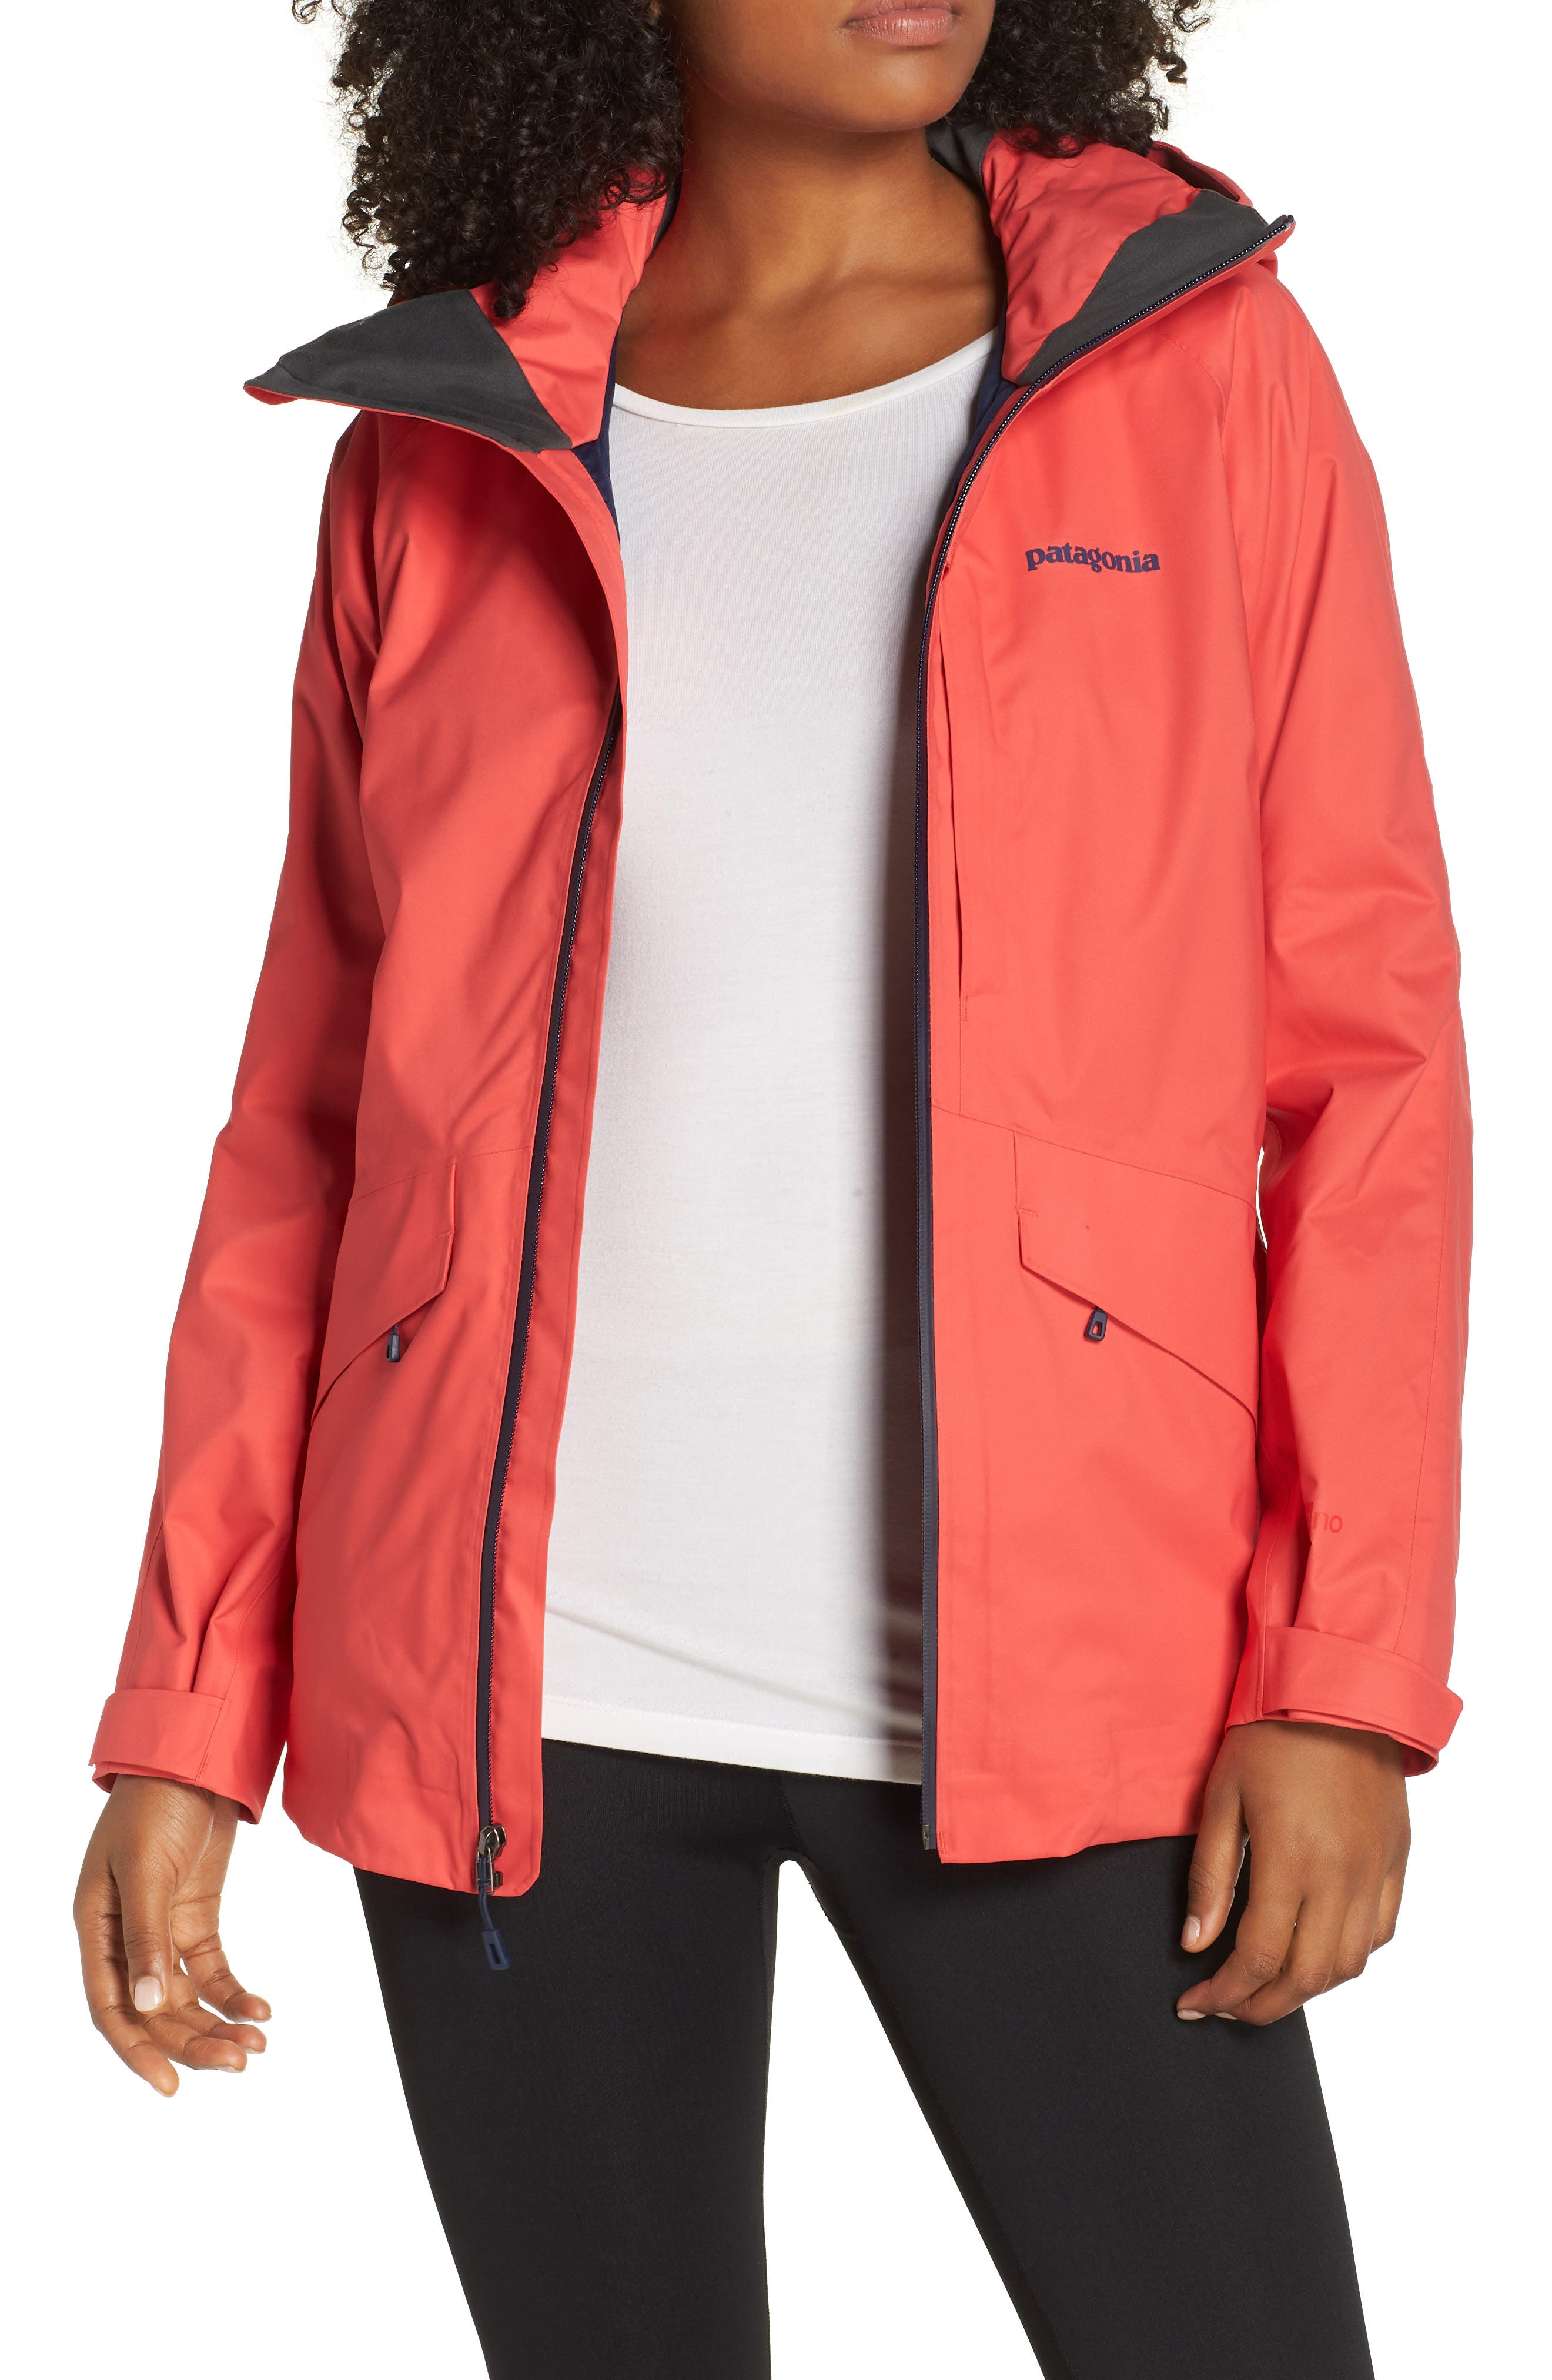 Patagonia Snowbelle Insulated Ski Jacket, Red